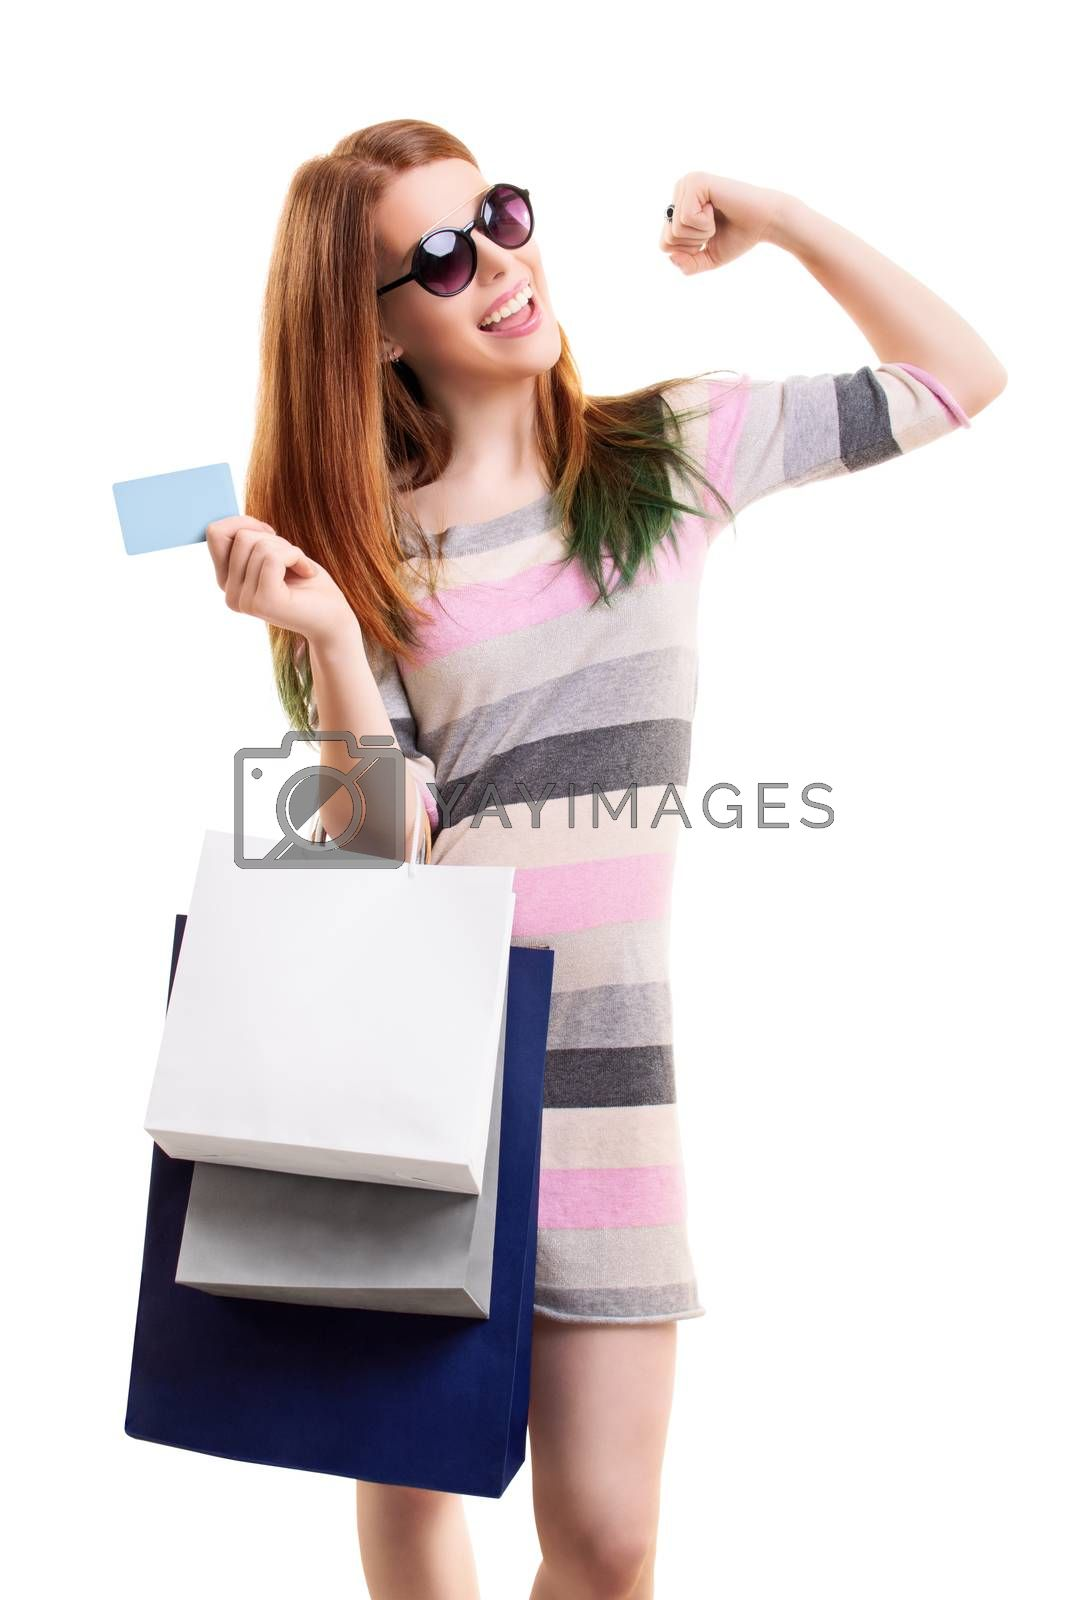 Excited beautiful young girl in a dress with sunglasses, holing shopping bags and a blank card, with raised arm, isolated on white background. Shopping concept, copy space.